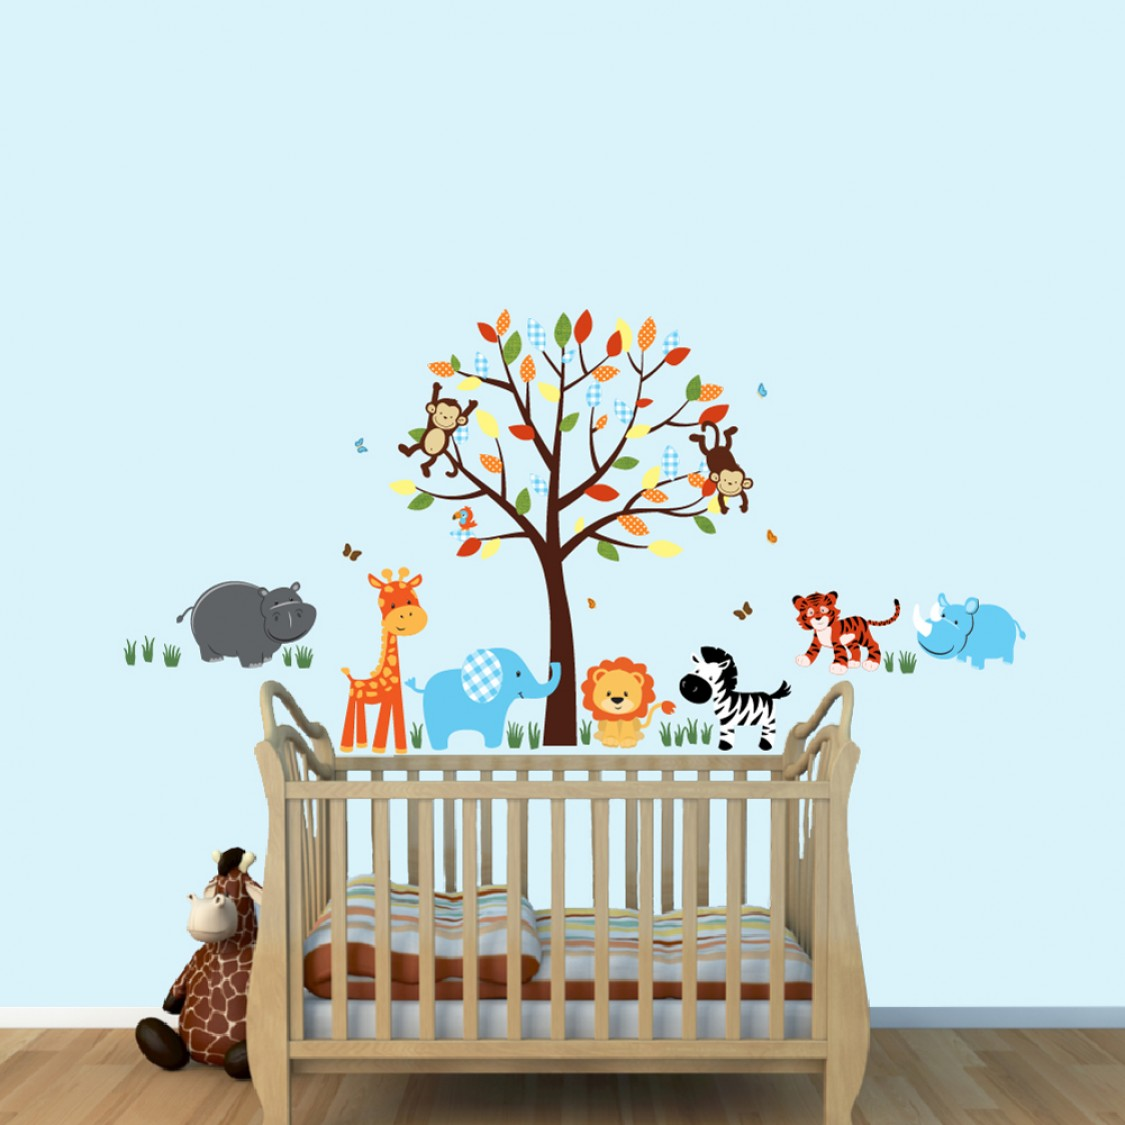 Cheerful Safari Wall Decals With Tiger Wall Decor For Childrens Playroom